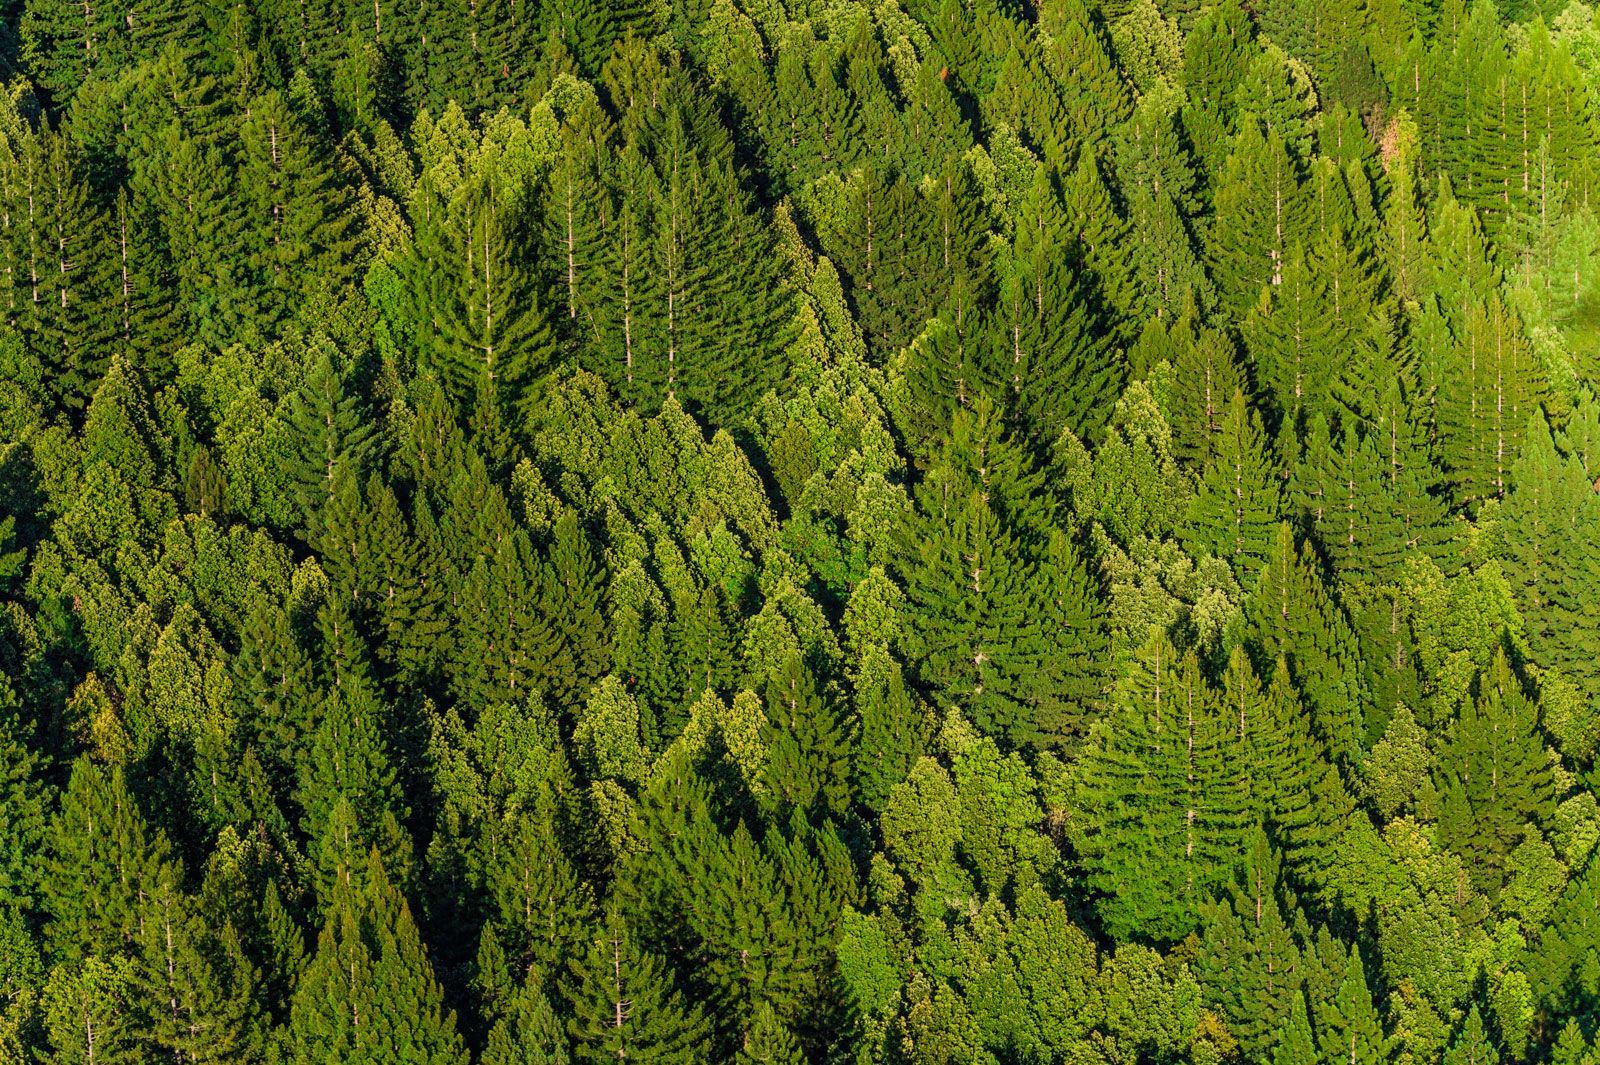 Mixed coniferous forest, Big Basin State Park, Monterey Bay, California, USA